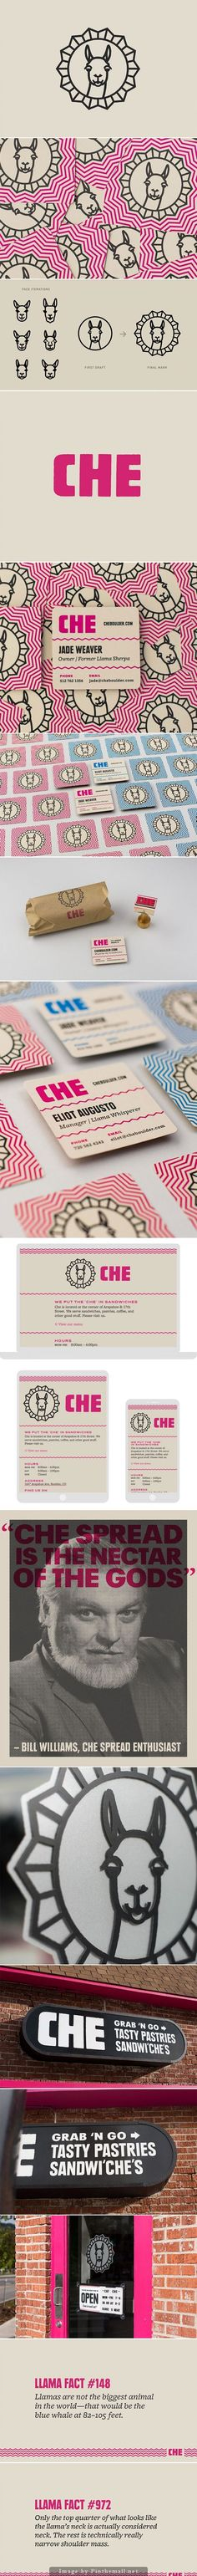 Cafe Che Cafe Che Branding / llama / logo / branding / identity / illustration / animal drawing / geometric / simple lines and shapes / pink and black / business card / stationary / signage / restaurant Brand Identity Design, Graphic Design Branding, Corporate Design, Typography Design, Lettering, Corporate Identity, Signage Design, Brochure Design, Logo Branding